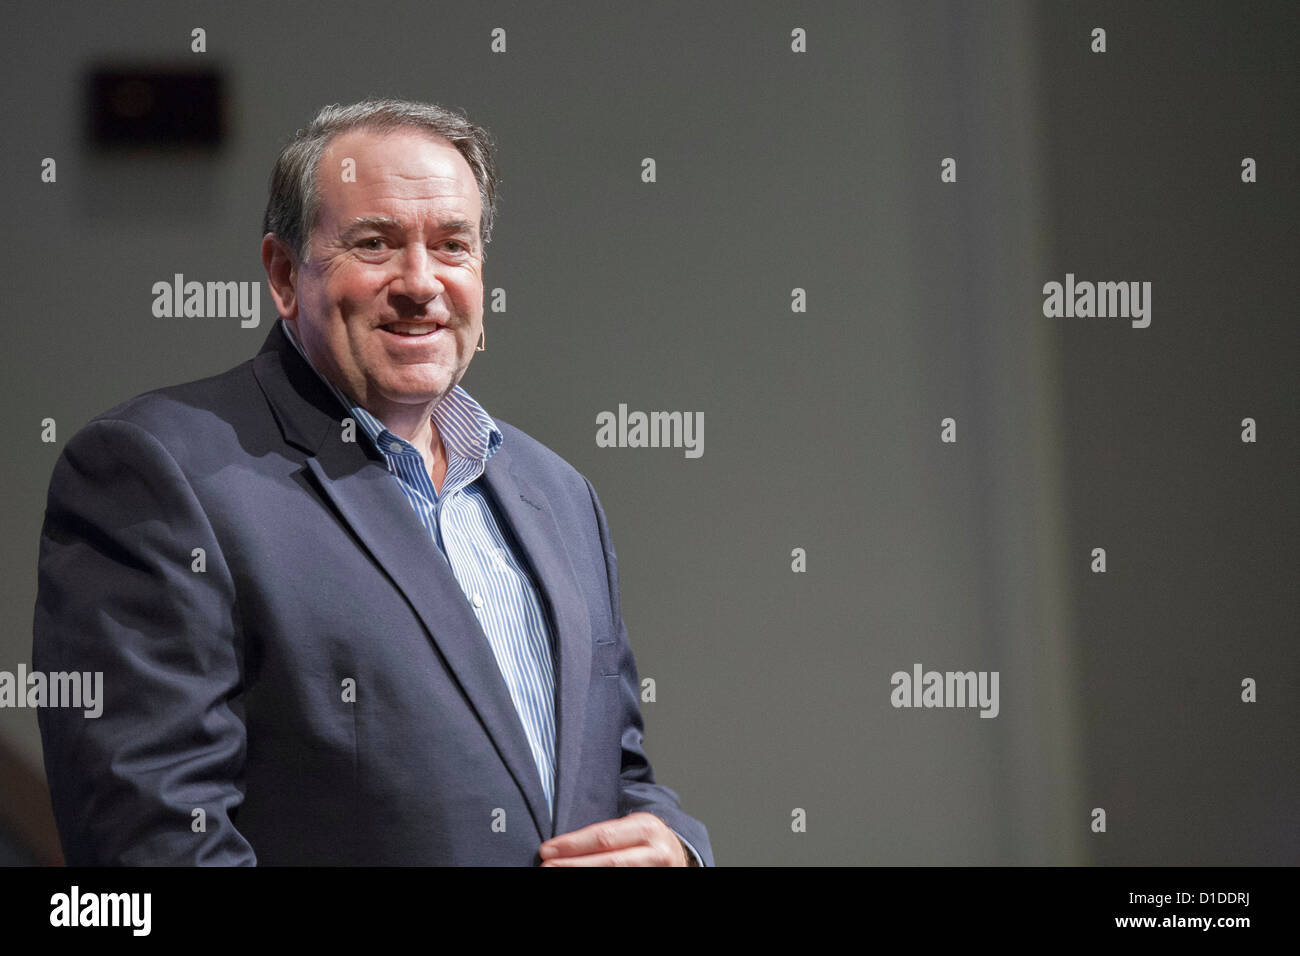 Mike Huckabee at a speaking engagement in Ocala, Florida - Stock Image